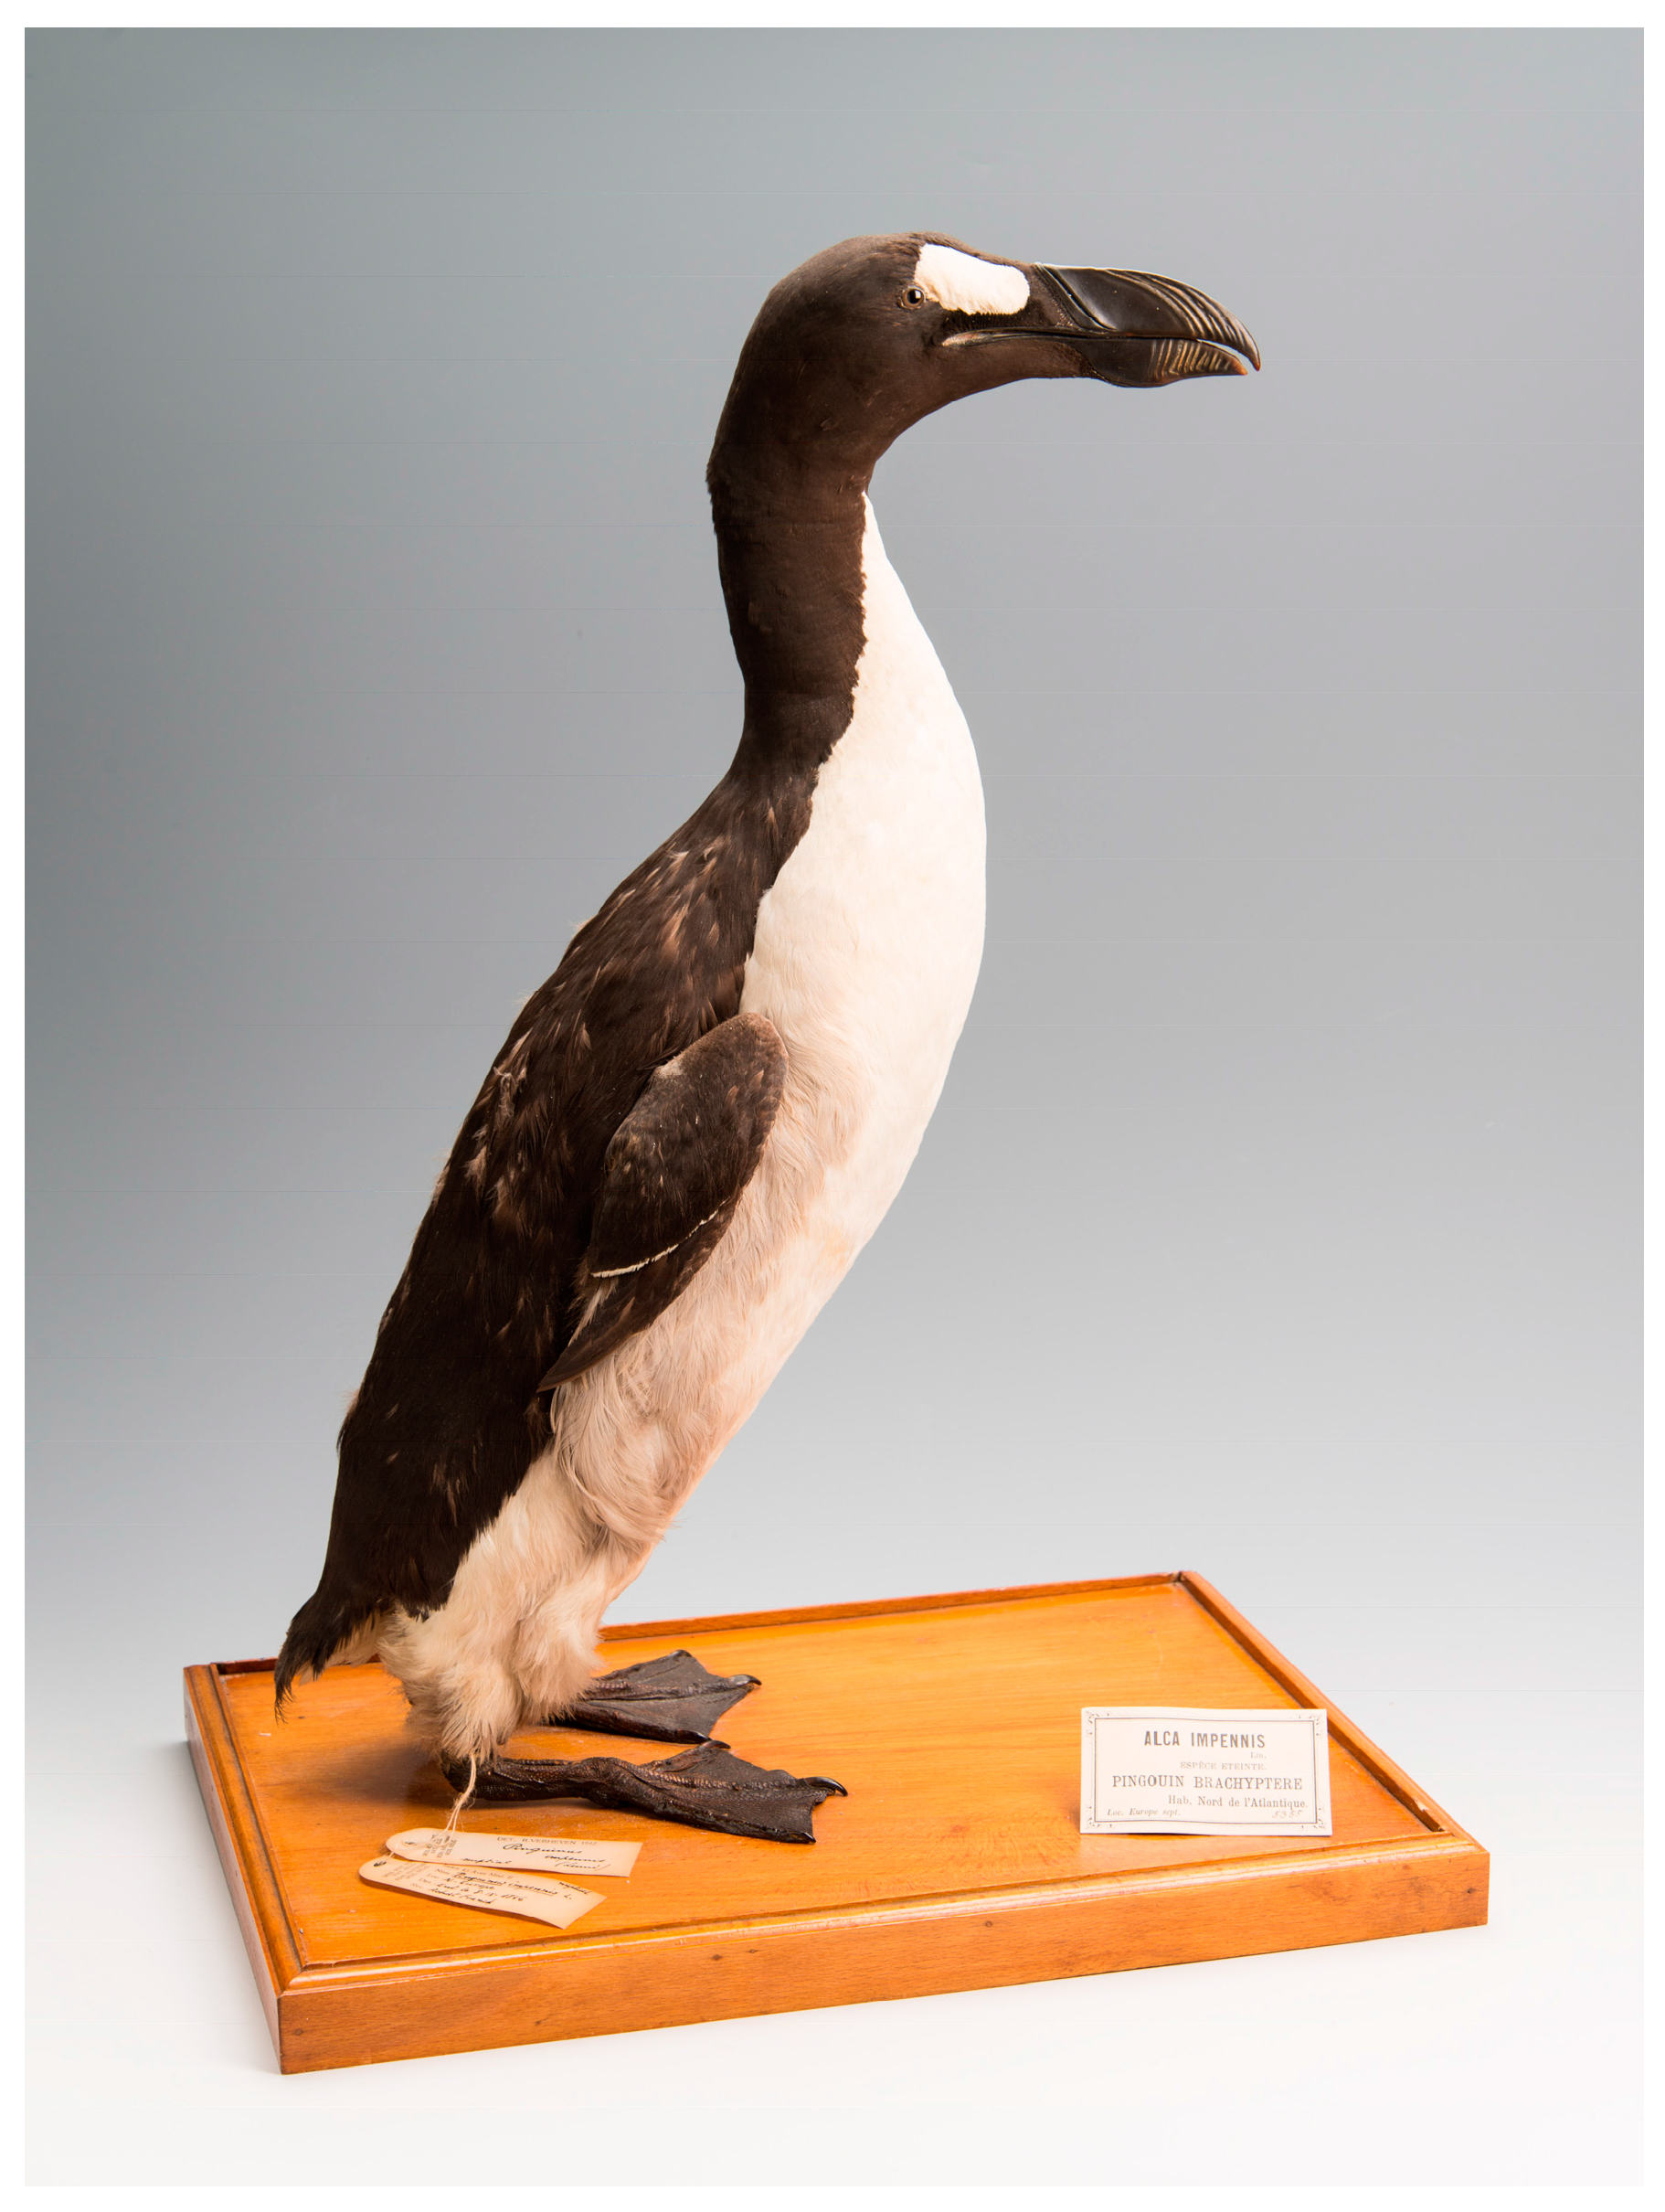 A mounted Creat Auk akin, The Brussels Auk (RBINS 5355) (MK135), from the collections at Royal Belgian Institute of Natural Sciences (Credit Thierry Hubin (RBINS)).